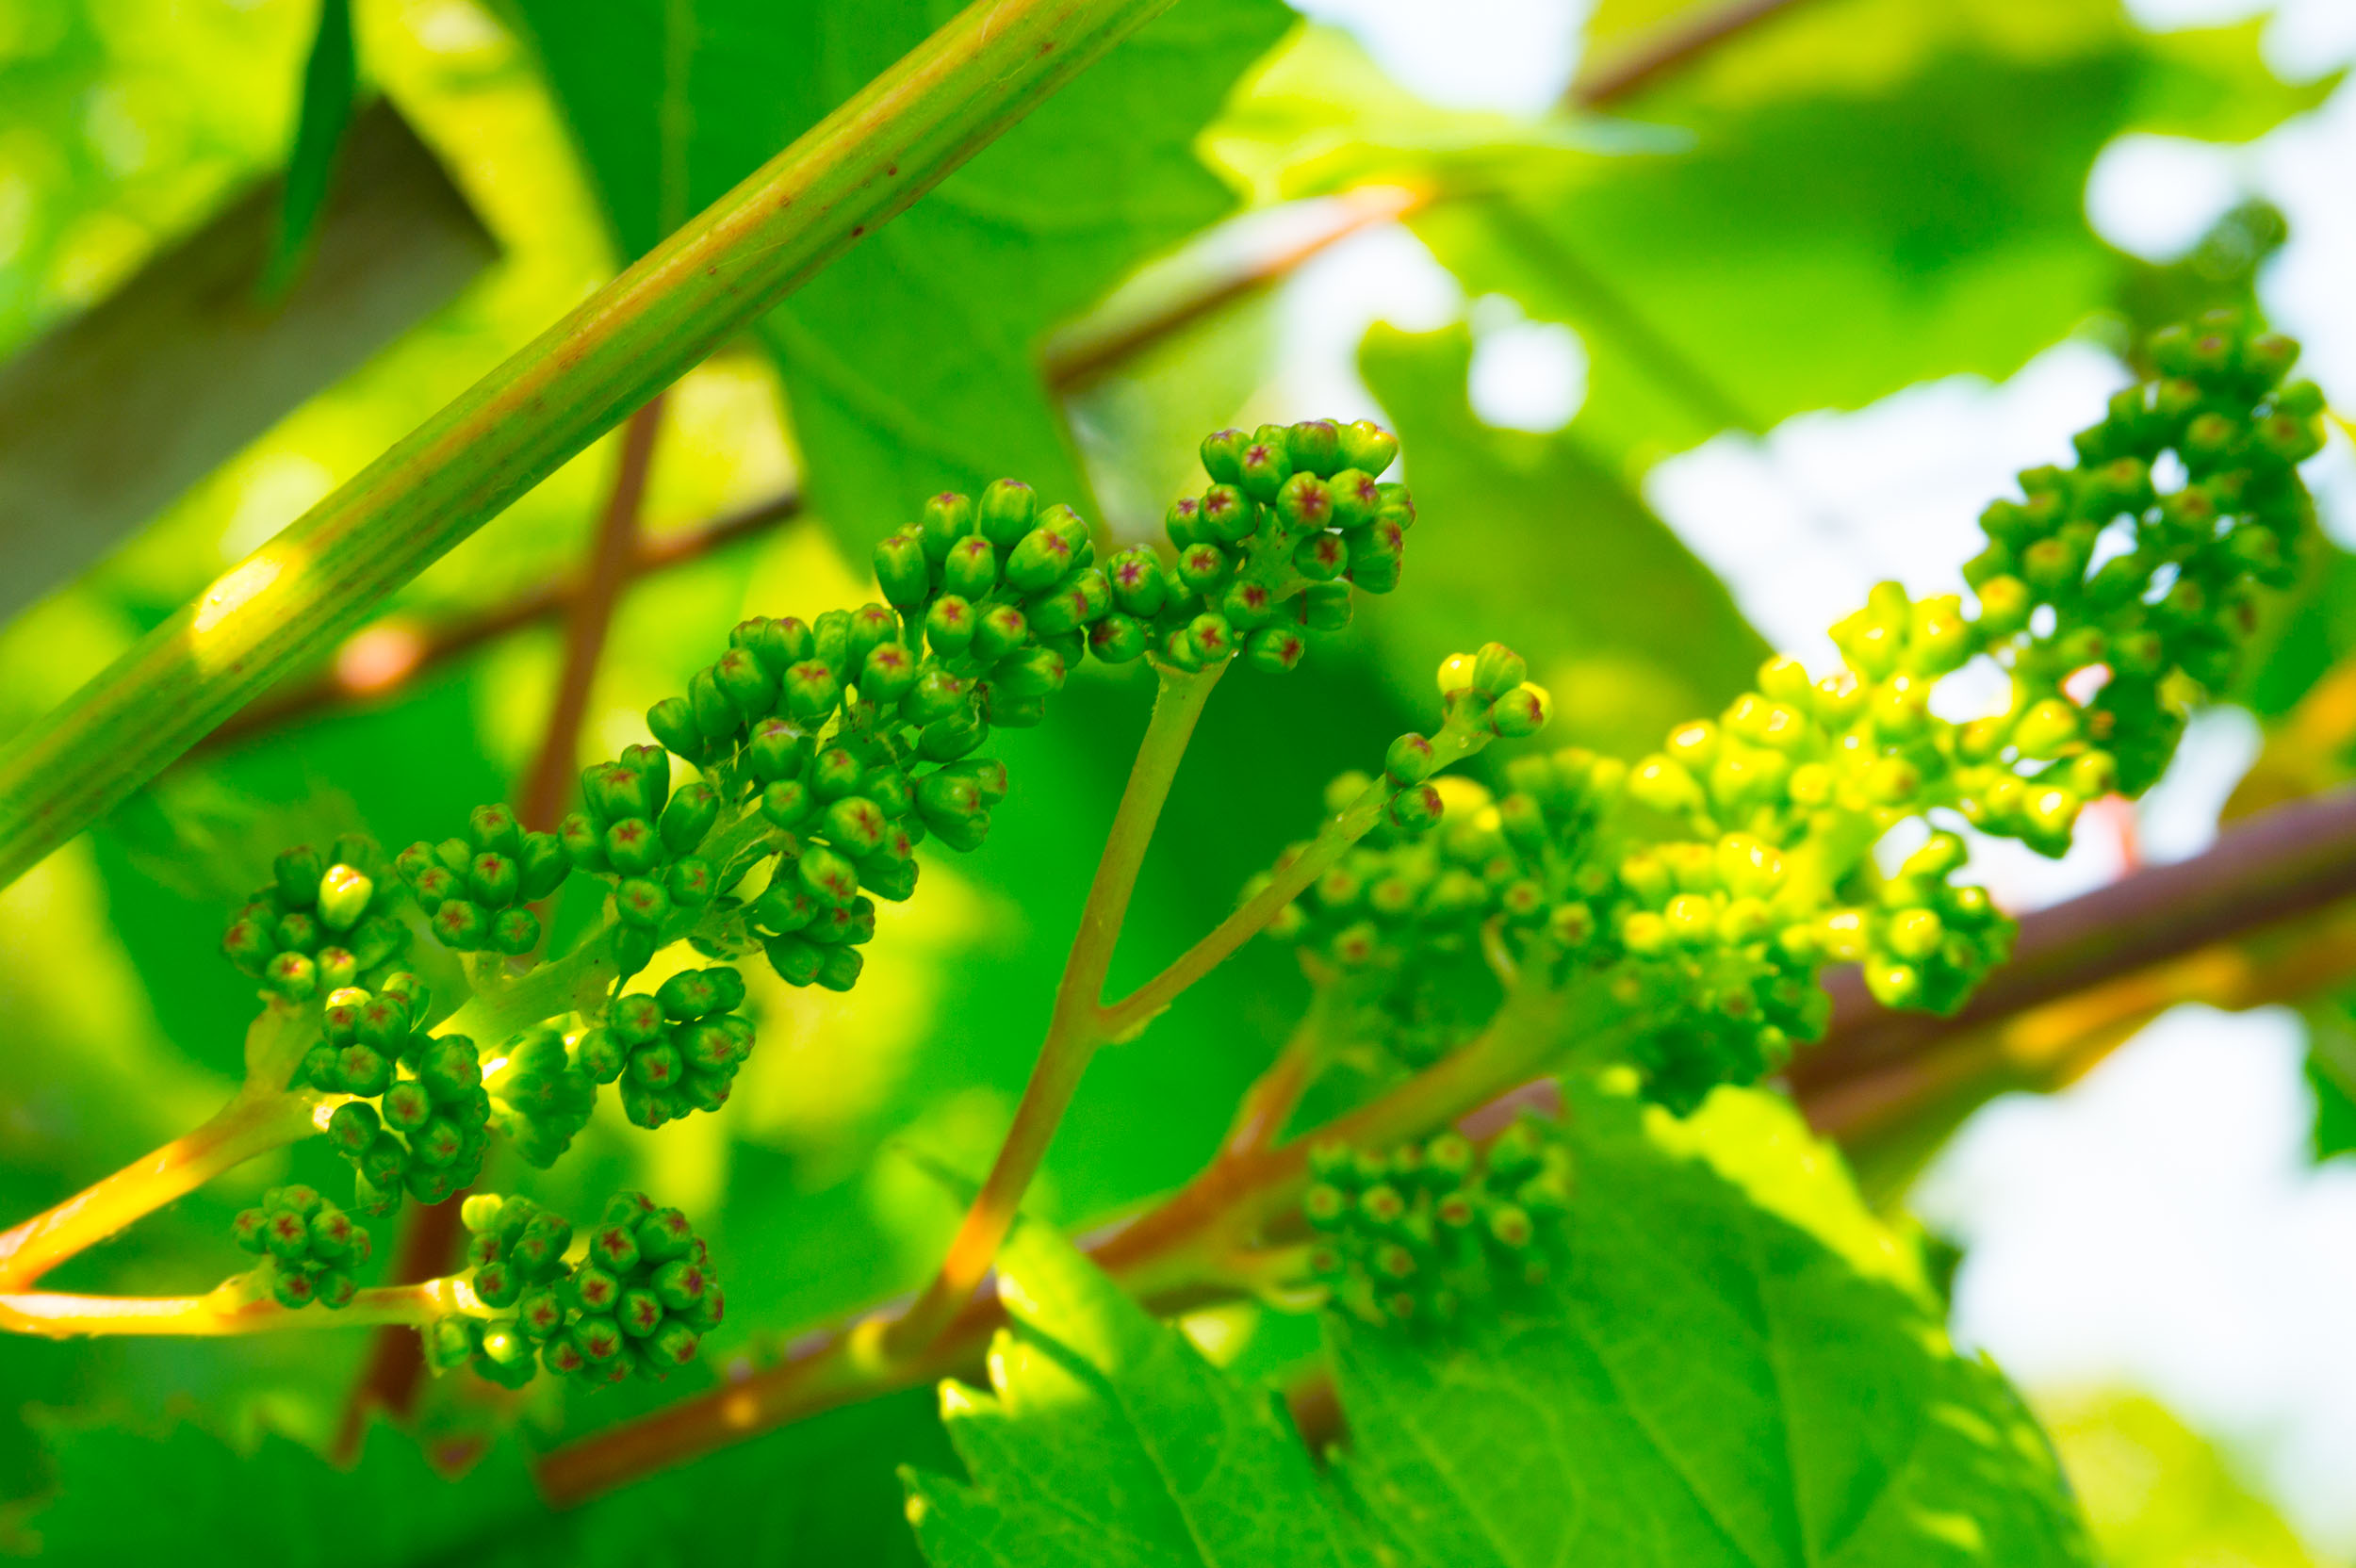 Meopham-Valley-Vineyard-Grapes-Vines-Flowering-5